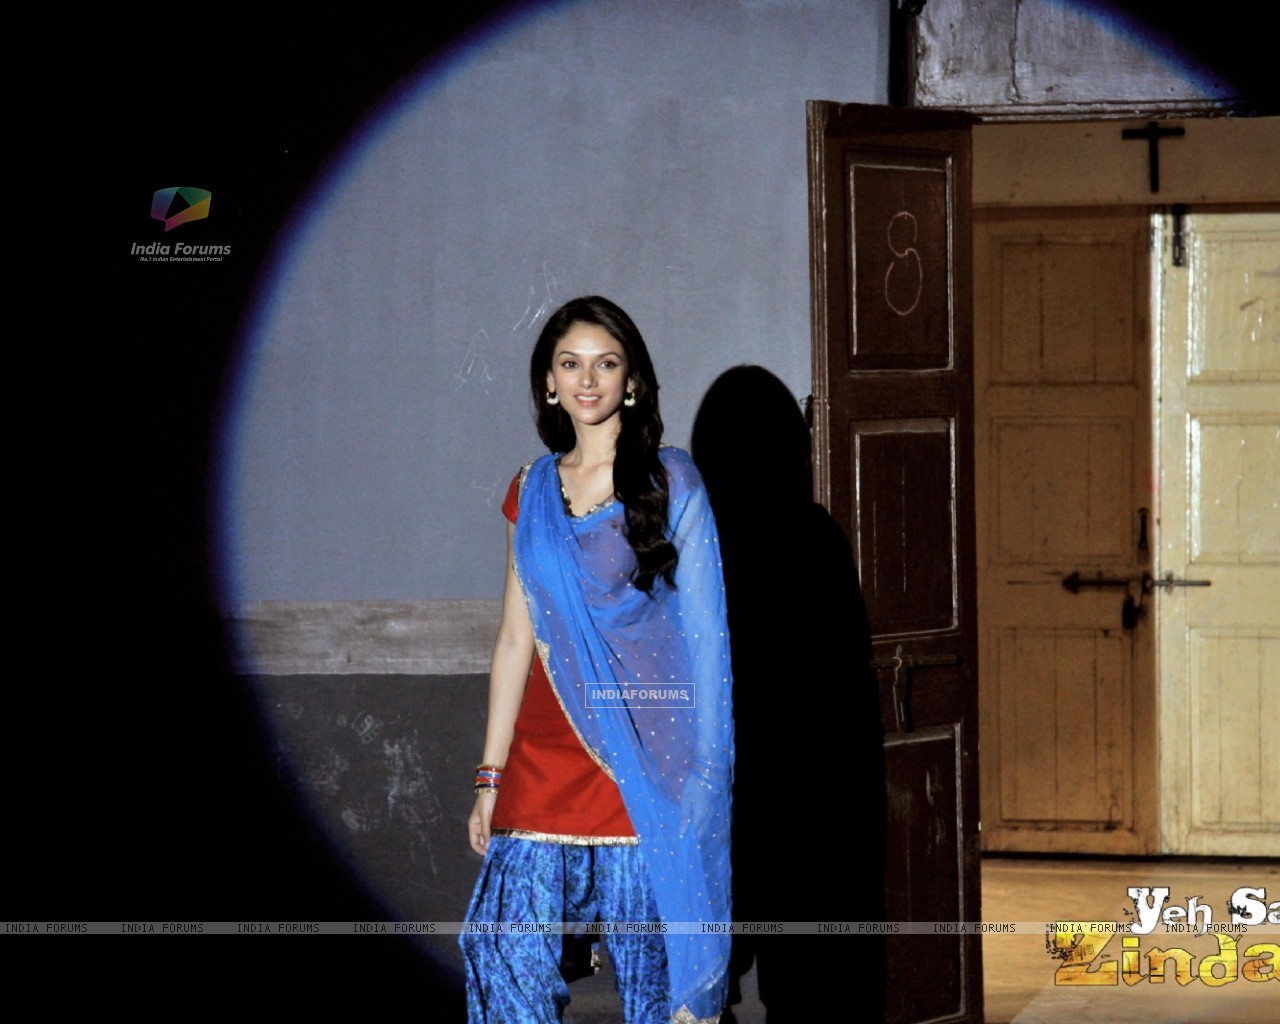 Aditi Rao Hydari in the movie Yeh Saali Zindagi (116137) size:1280x1024